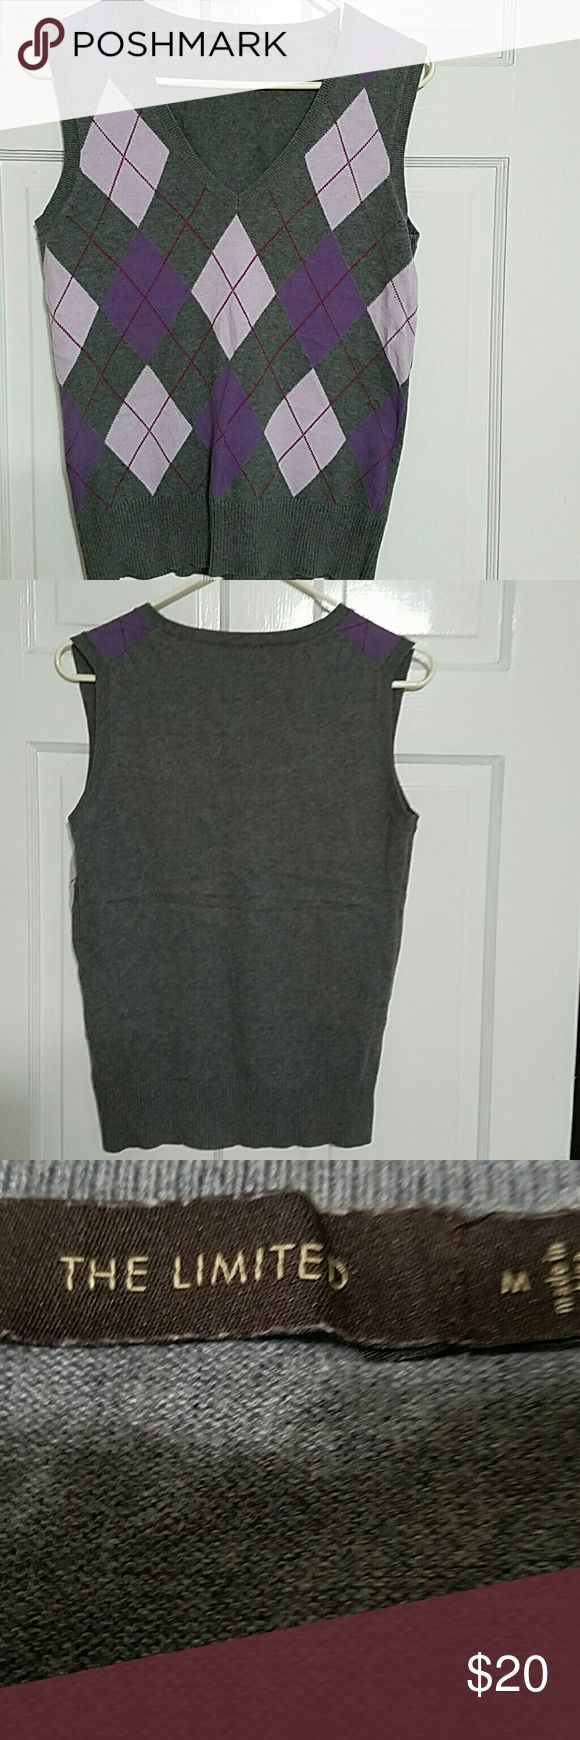 The Limited gray, purple vest sweater medium The Limited gray and purple vest sweater 100% cotton The Limited Sweaters